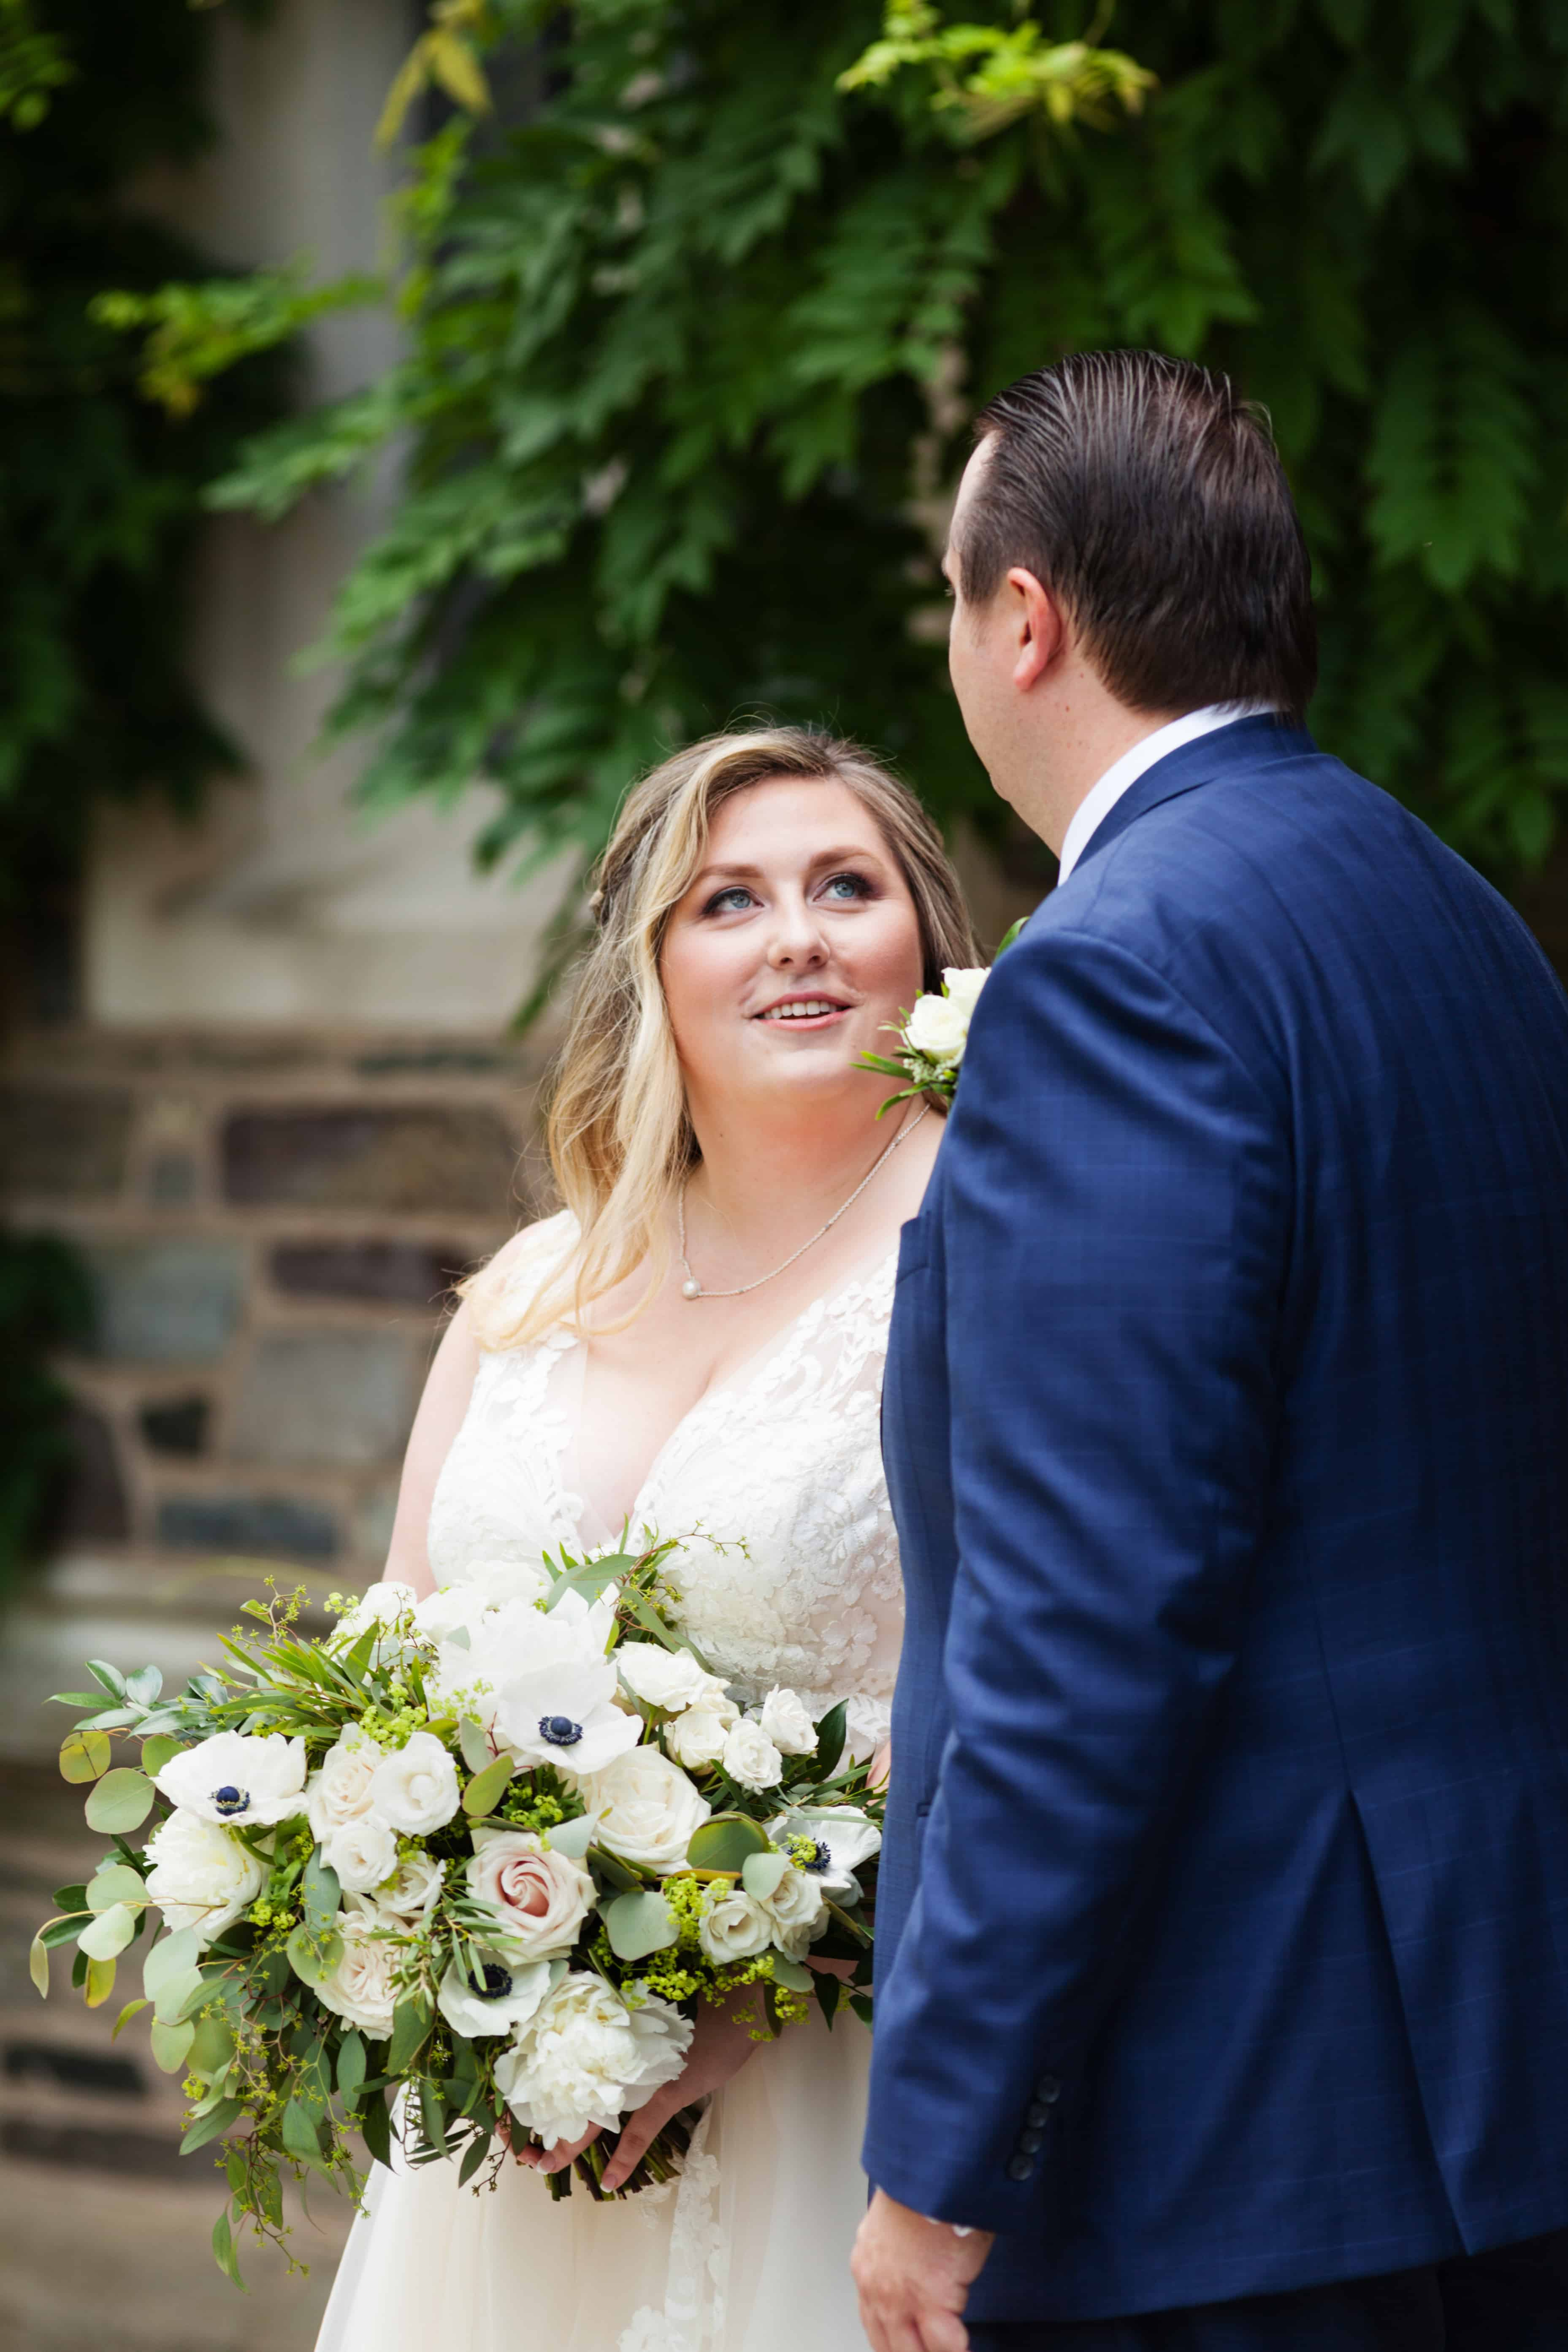 Bride looks up at groom, holding Petal Pushers bouquet, during Princeton University campus wedding portrait session